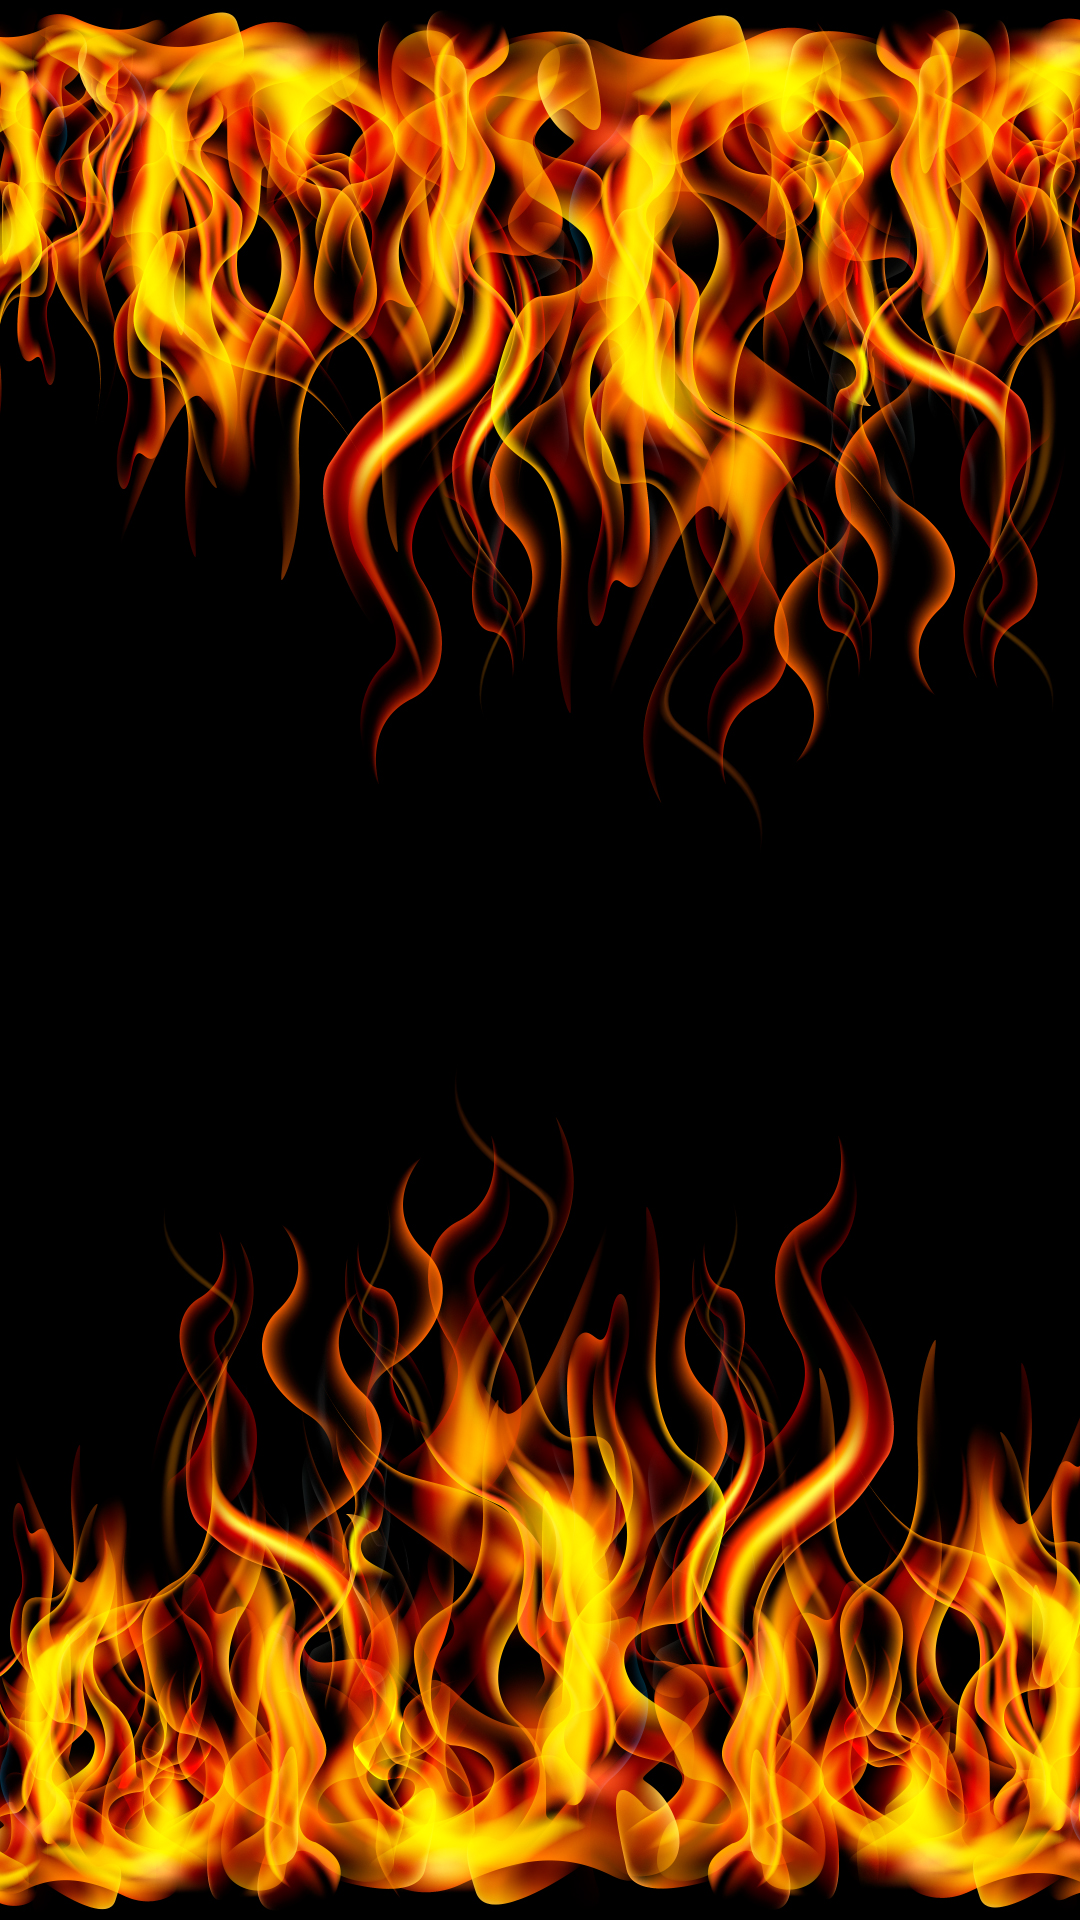 Fire Destroyer Phone Wallpaper - Fire Wallpaper Hd For Android , HD Wallpaper & Backgrounds